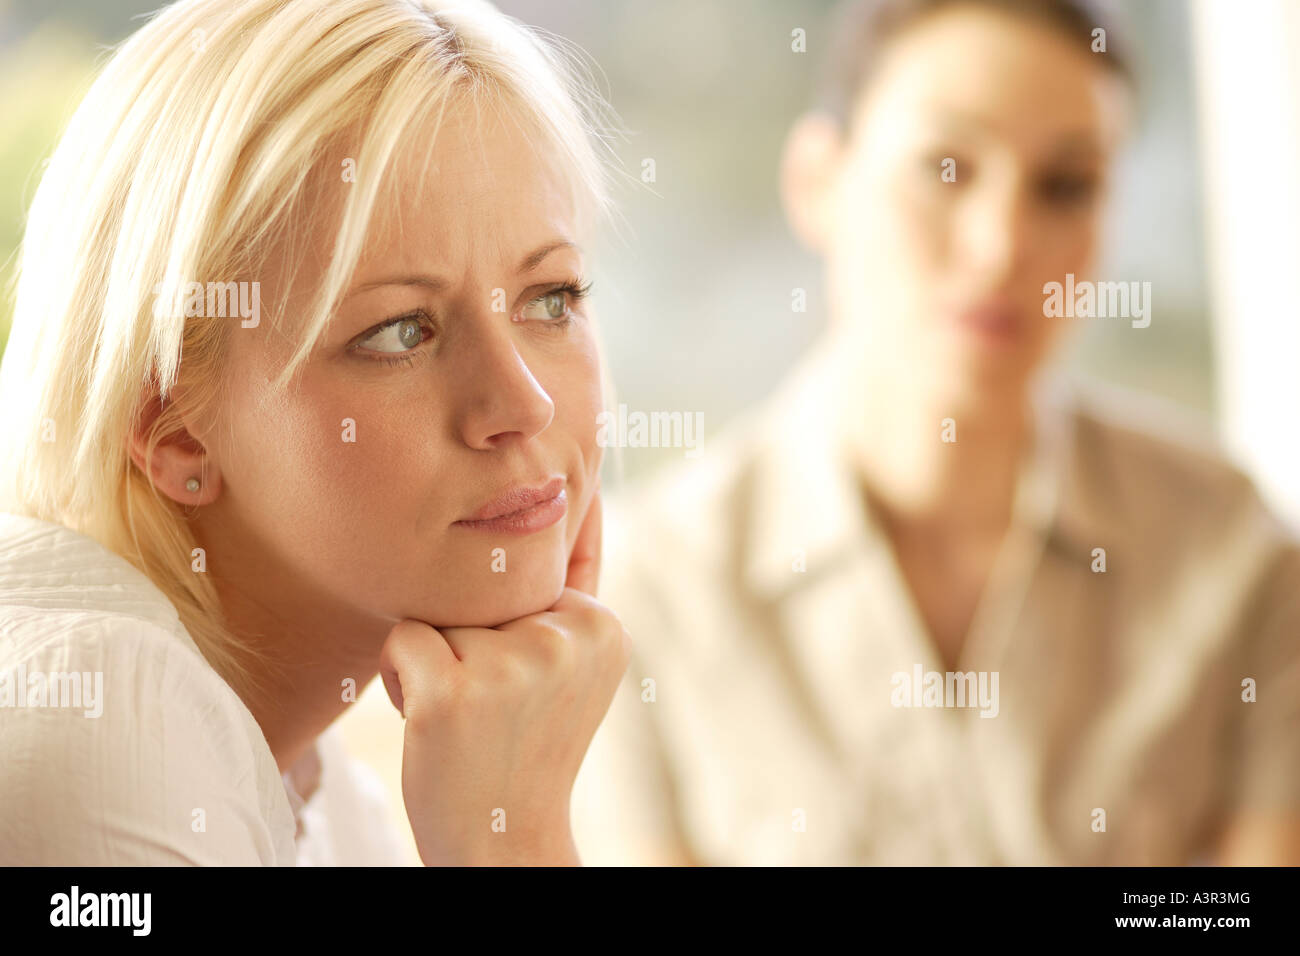 Two women in discussion - Stock Image